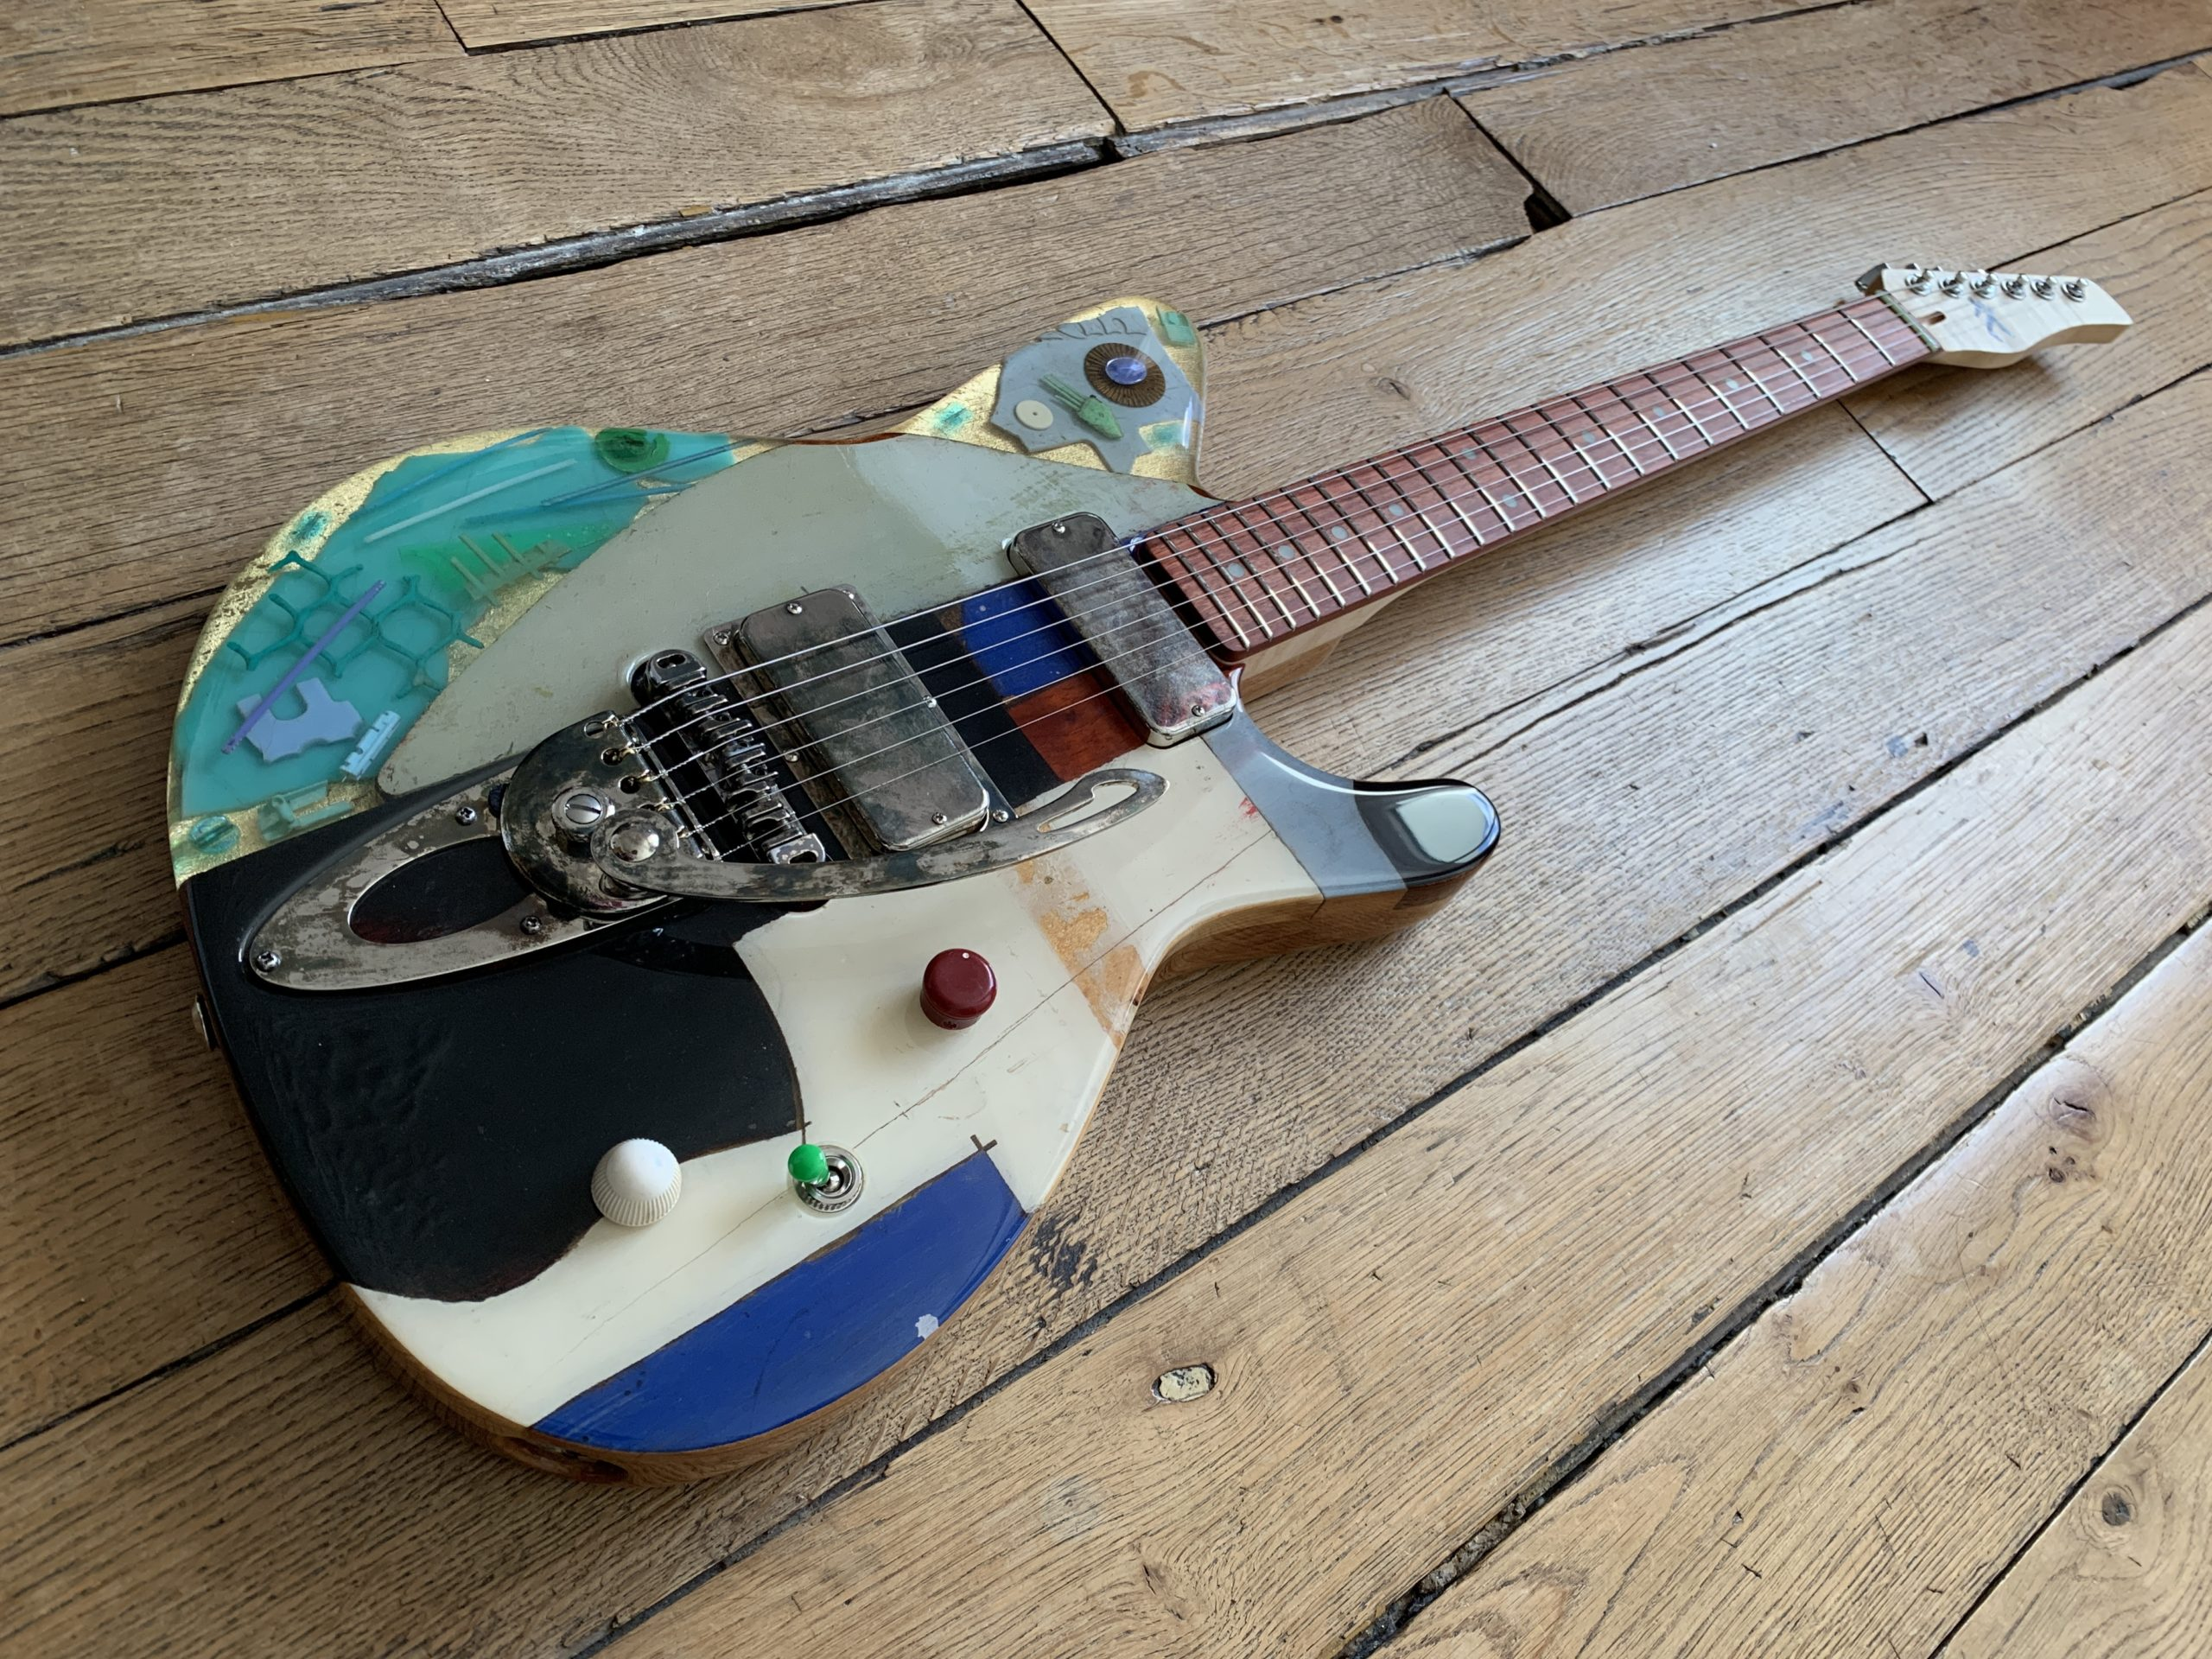 Octopus G2002 Spalt review, awesome sounding guitar and a piece of art